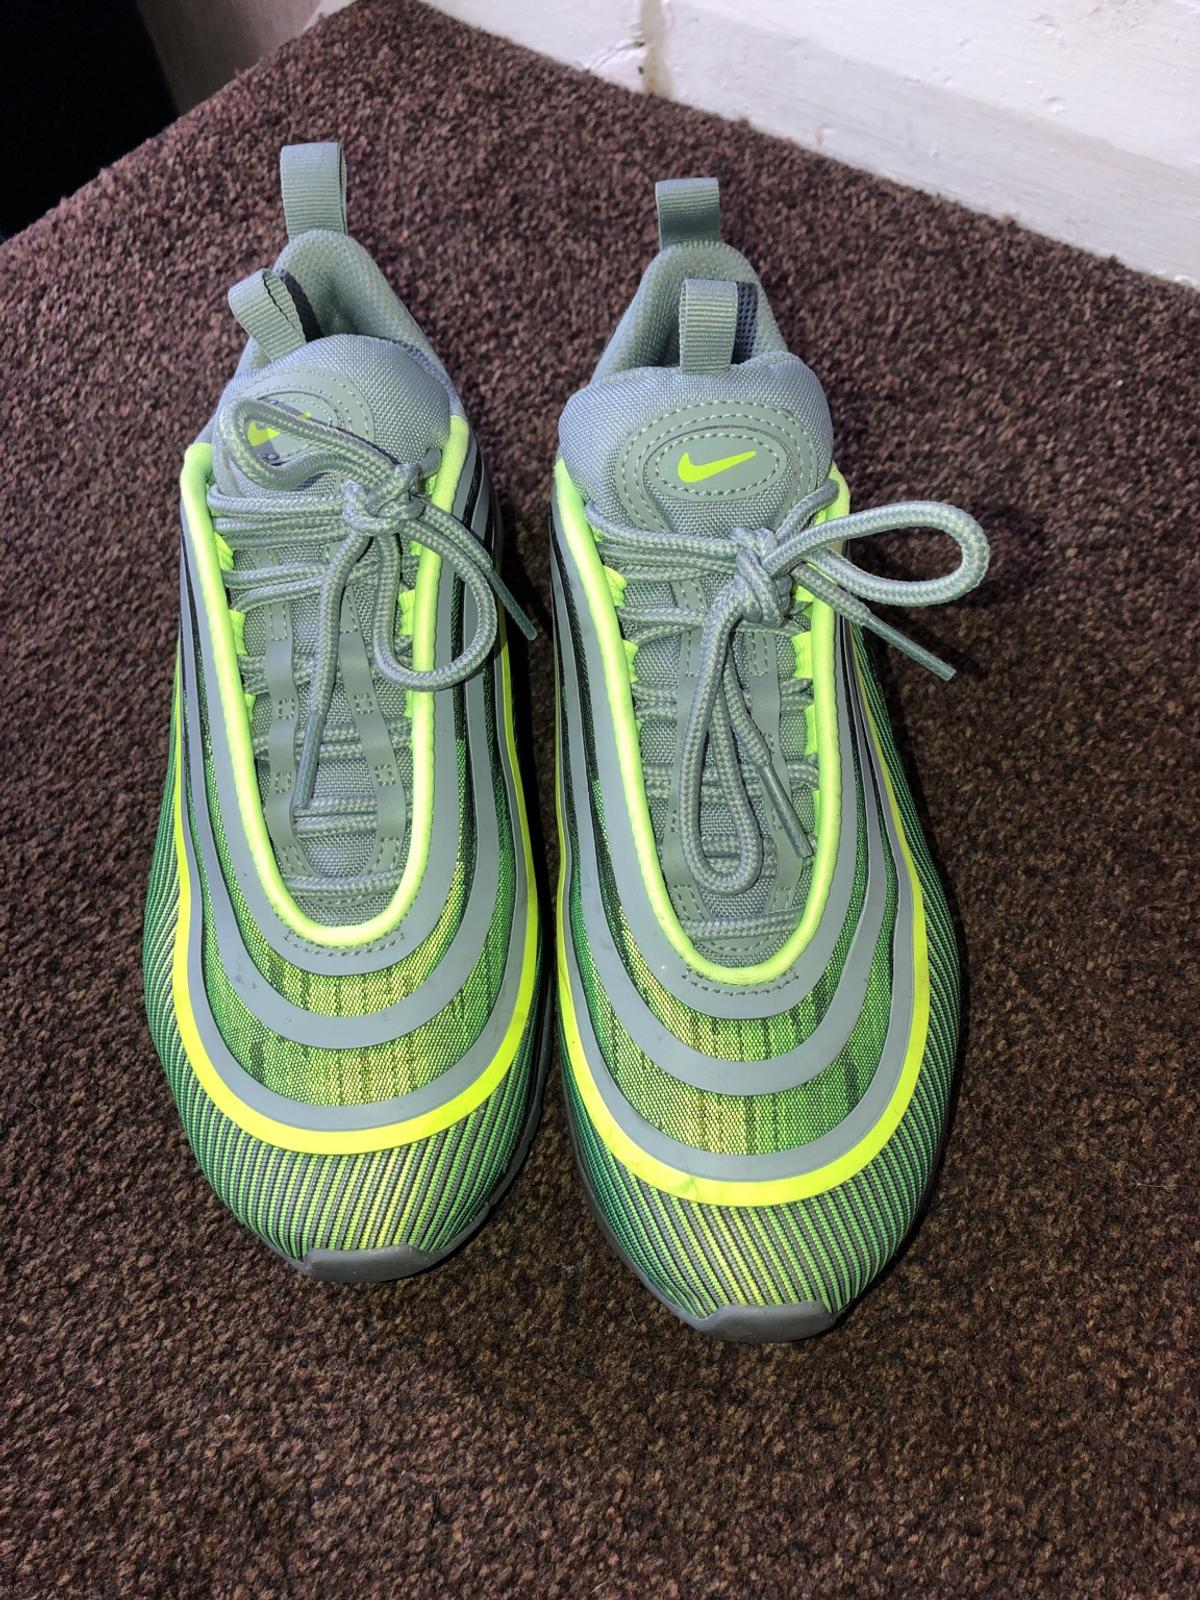 new style 8a218 90b0e Nike 97 trainers